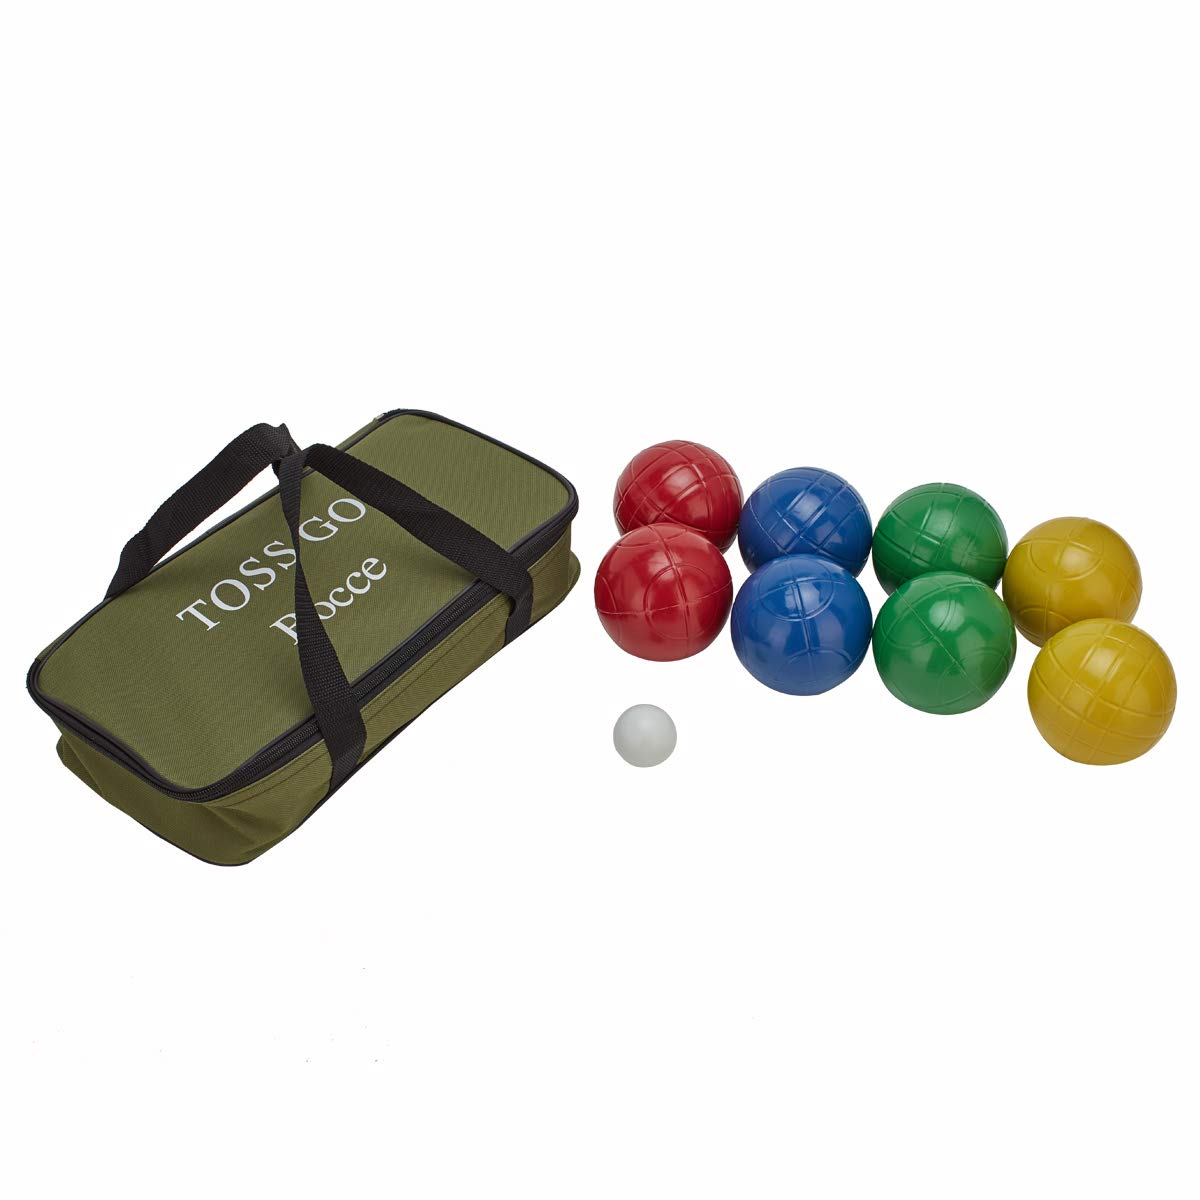 LAWN TIME Bocce Set - Recreational Plastic 90mm Bocce Ball Set with Carrier Bag - Classic Outdoor Toss Game by LAWN TIME (Image #2)